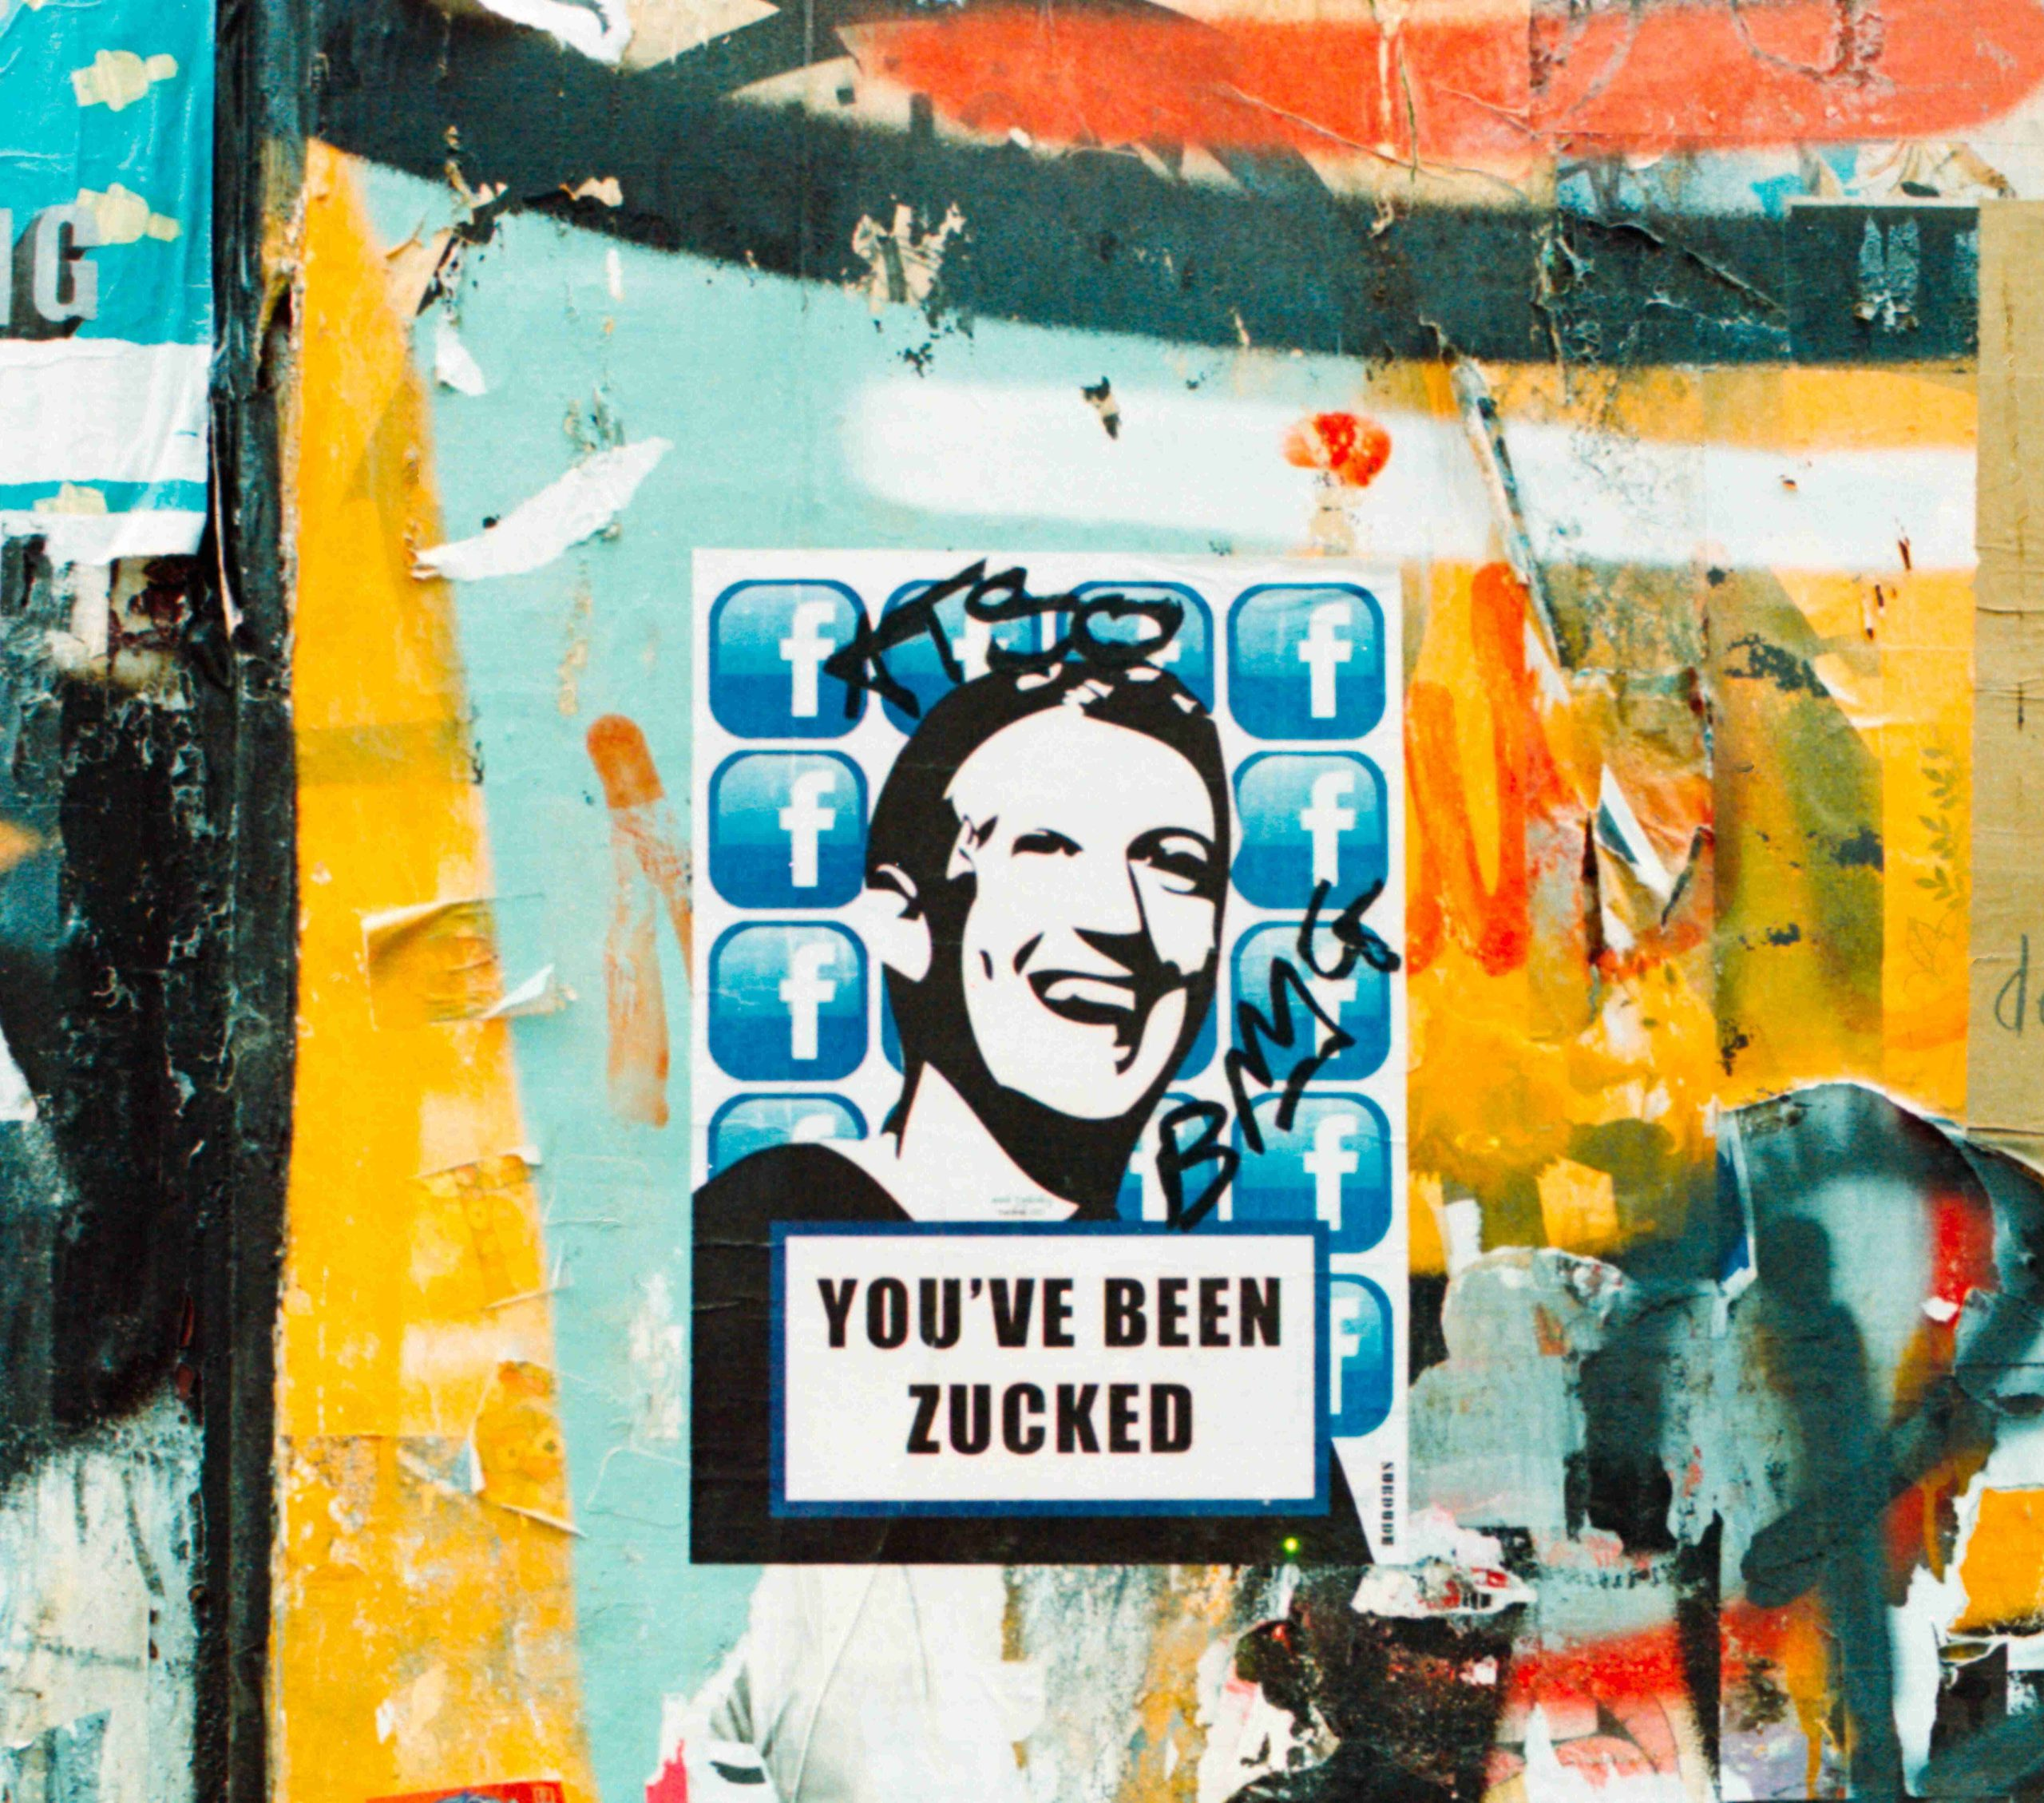 """Graffiti wall with image of Facebook founder, Mark Zuckerberg, with the saying """"You've been Zucked."""""""